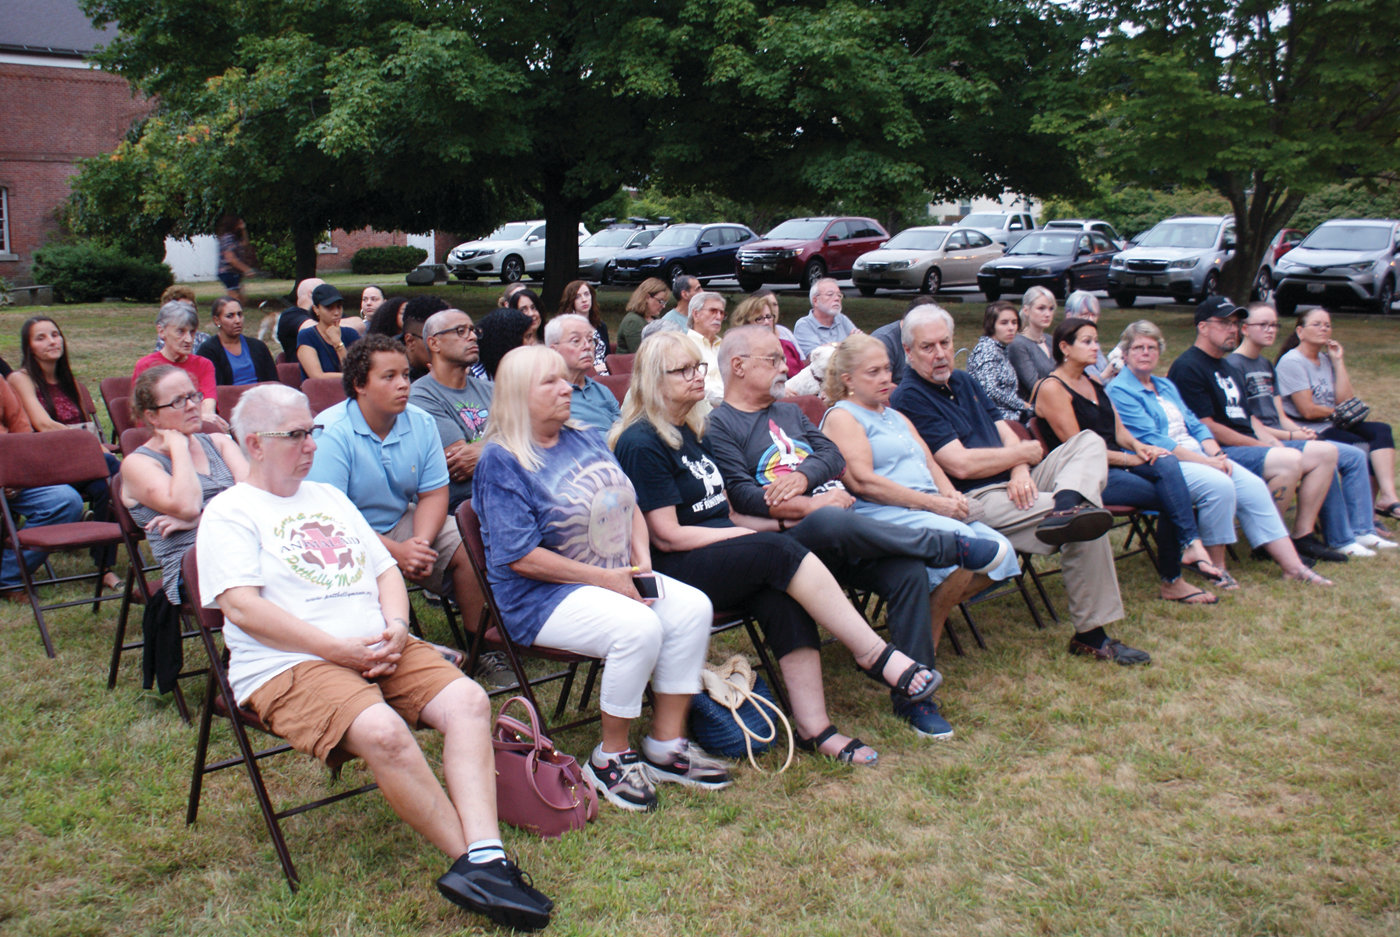 GOOD TURNOUT: A large crowd gathered on Aug. 17 for the Homeless Animals Day/Candlelight Vigil and awards ceremony.